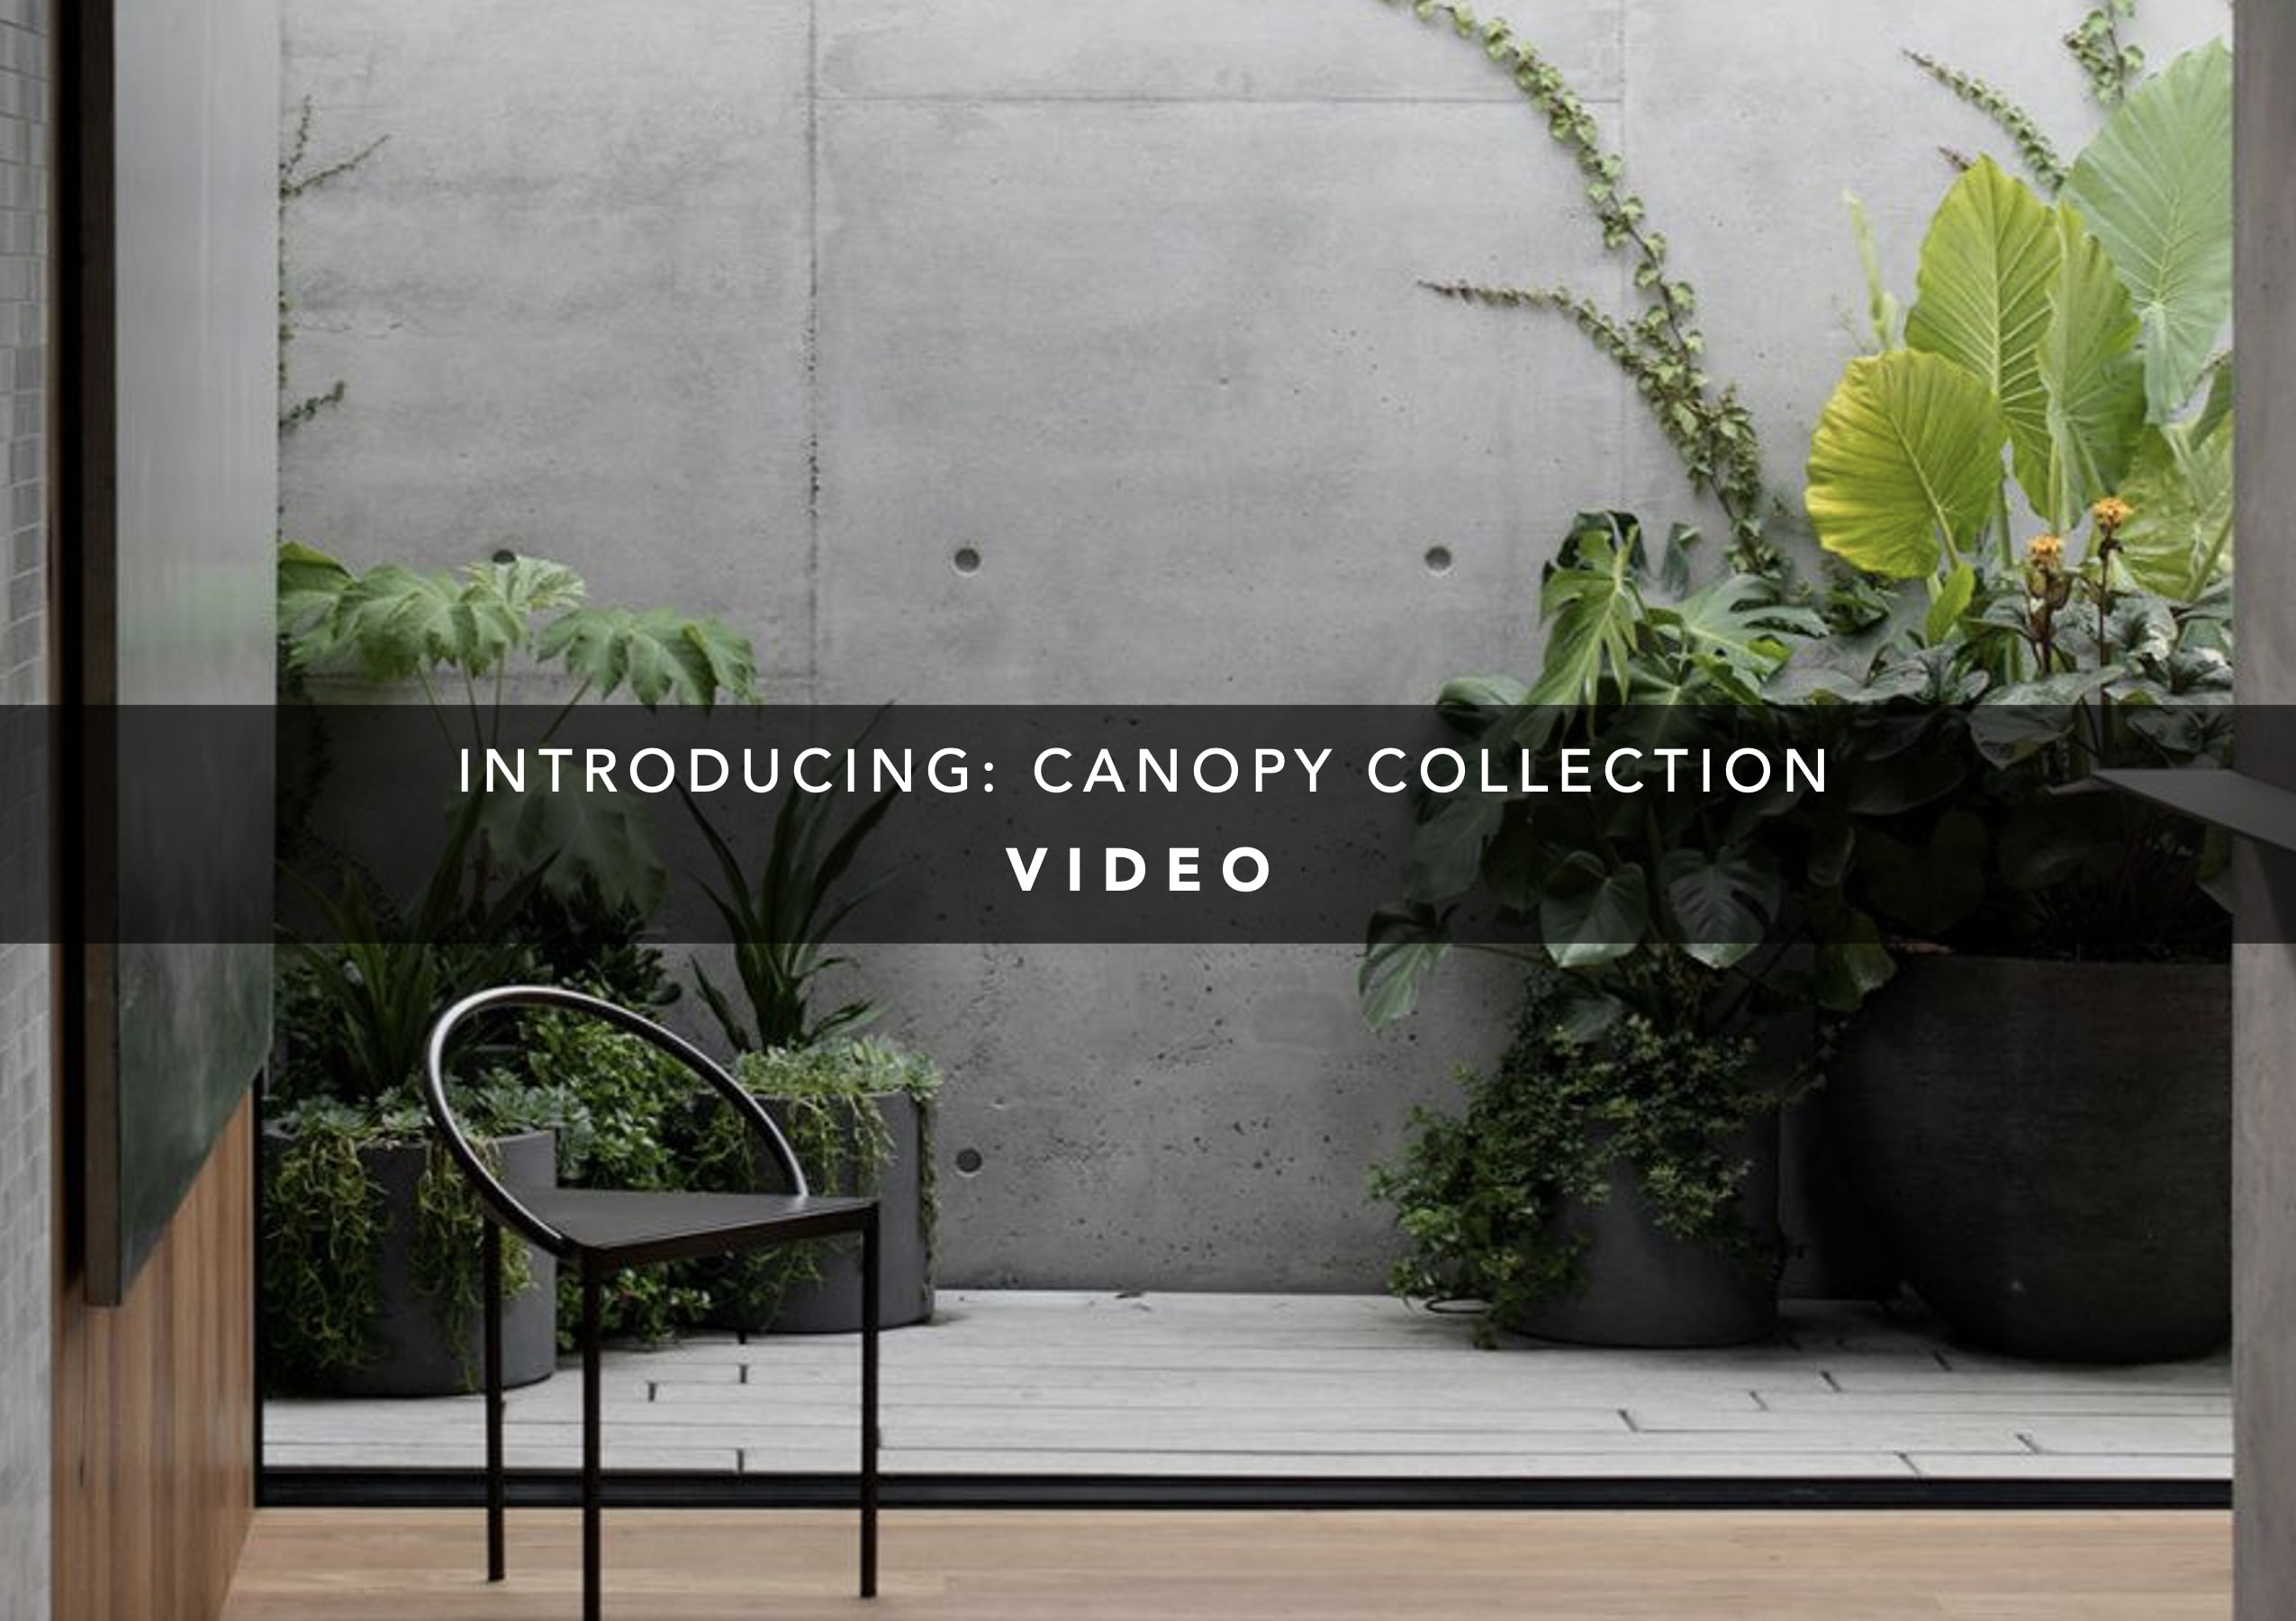 Introducing: Canopy Collection